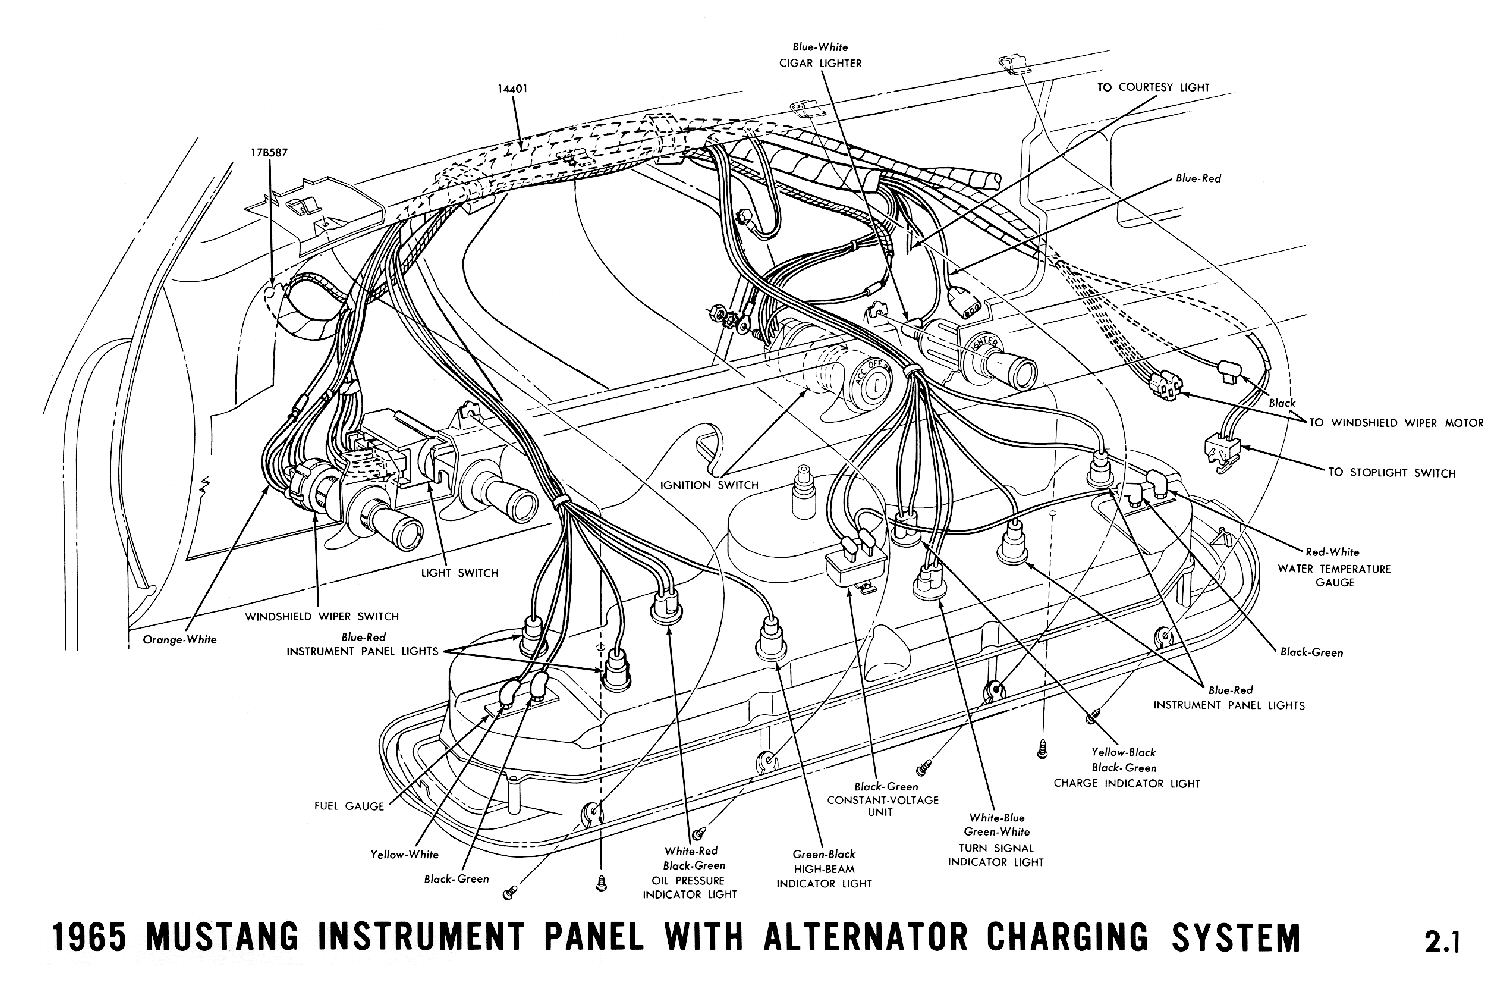 1965a 1965 mustang wiring diagrams average joe restoration 1965 mustang alternator wiring at bayanpartner.co